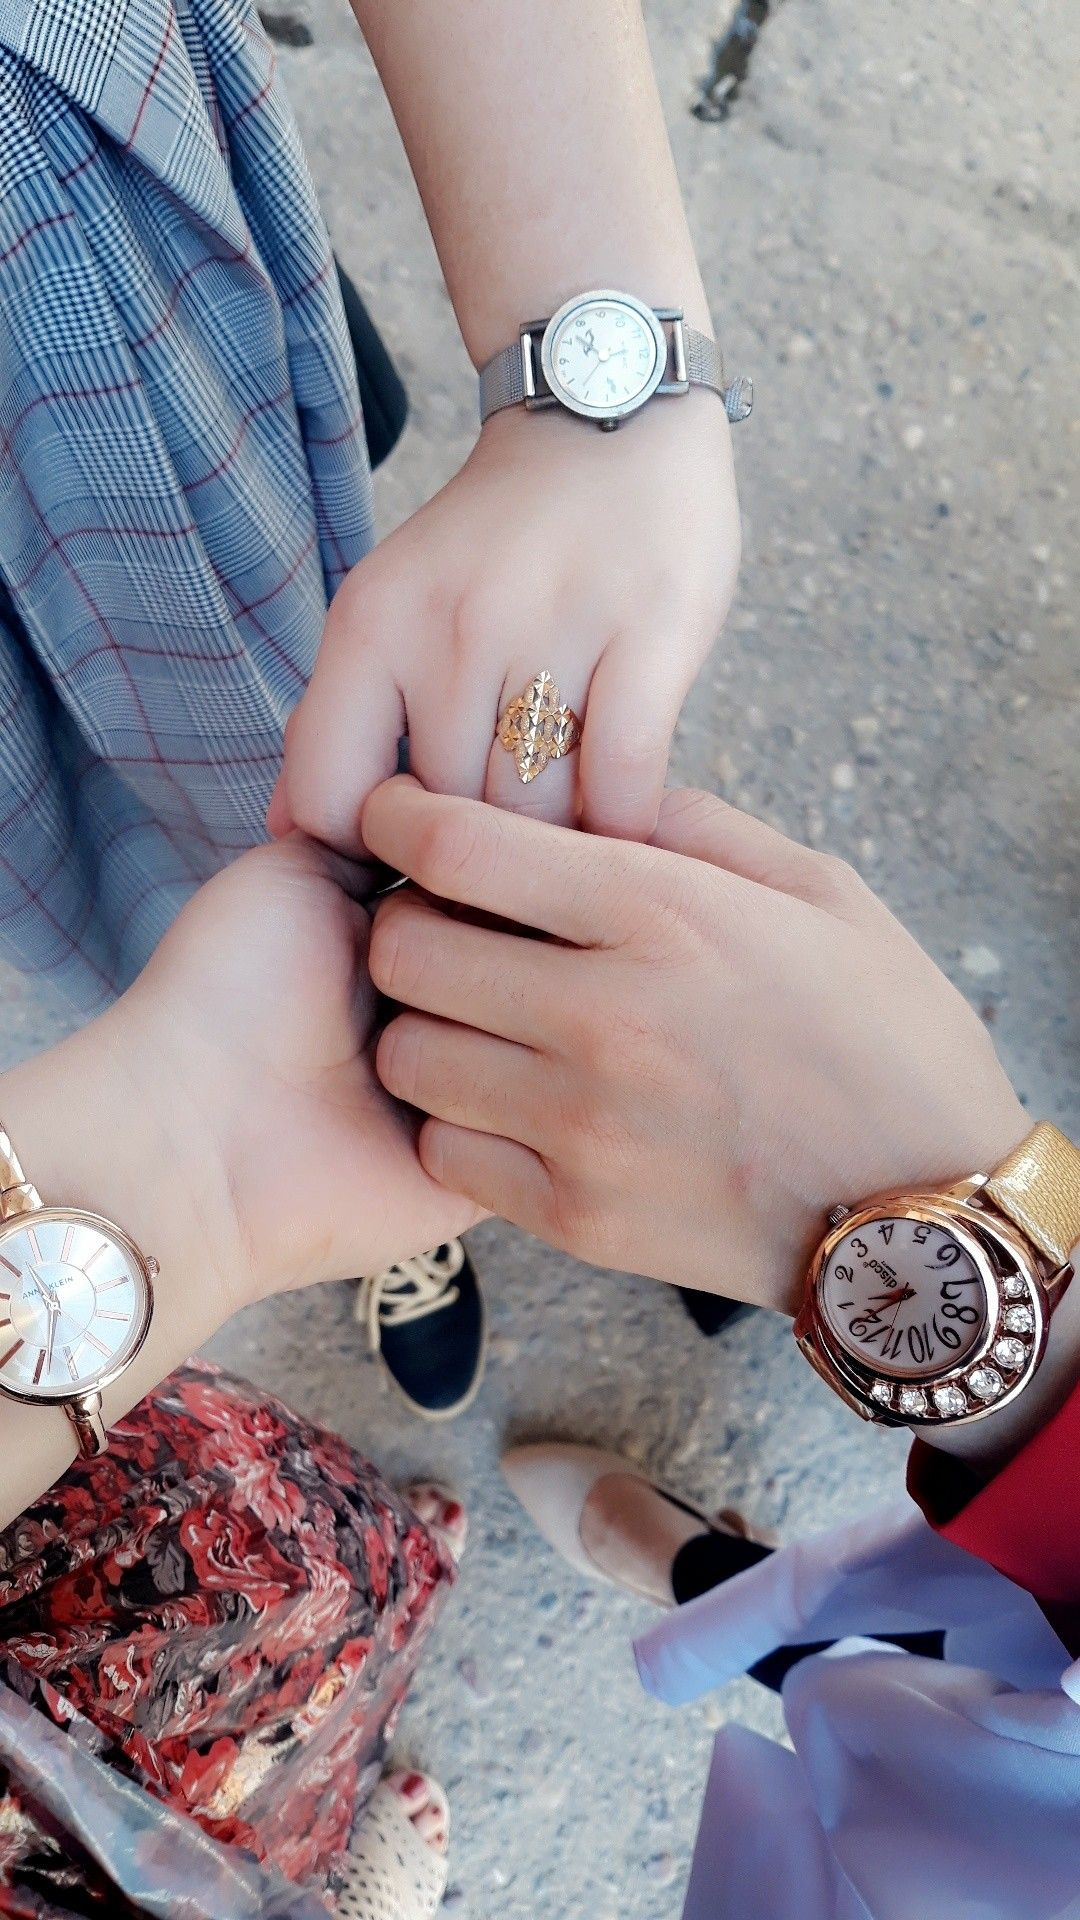 Pin By ڠــٻ ــم ــۃ 𝐆𝐇𝐘𝐌𝐇 On Friends In 2020 Stylish Girl Pic Girly Jewelry Boy And Girl Best Friends